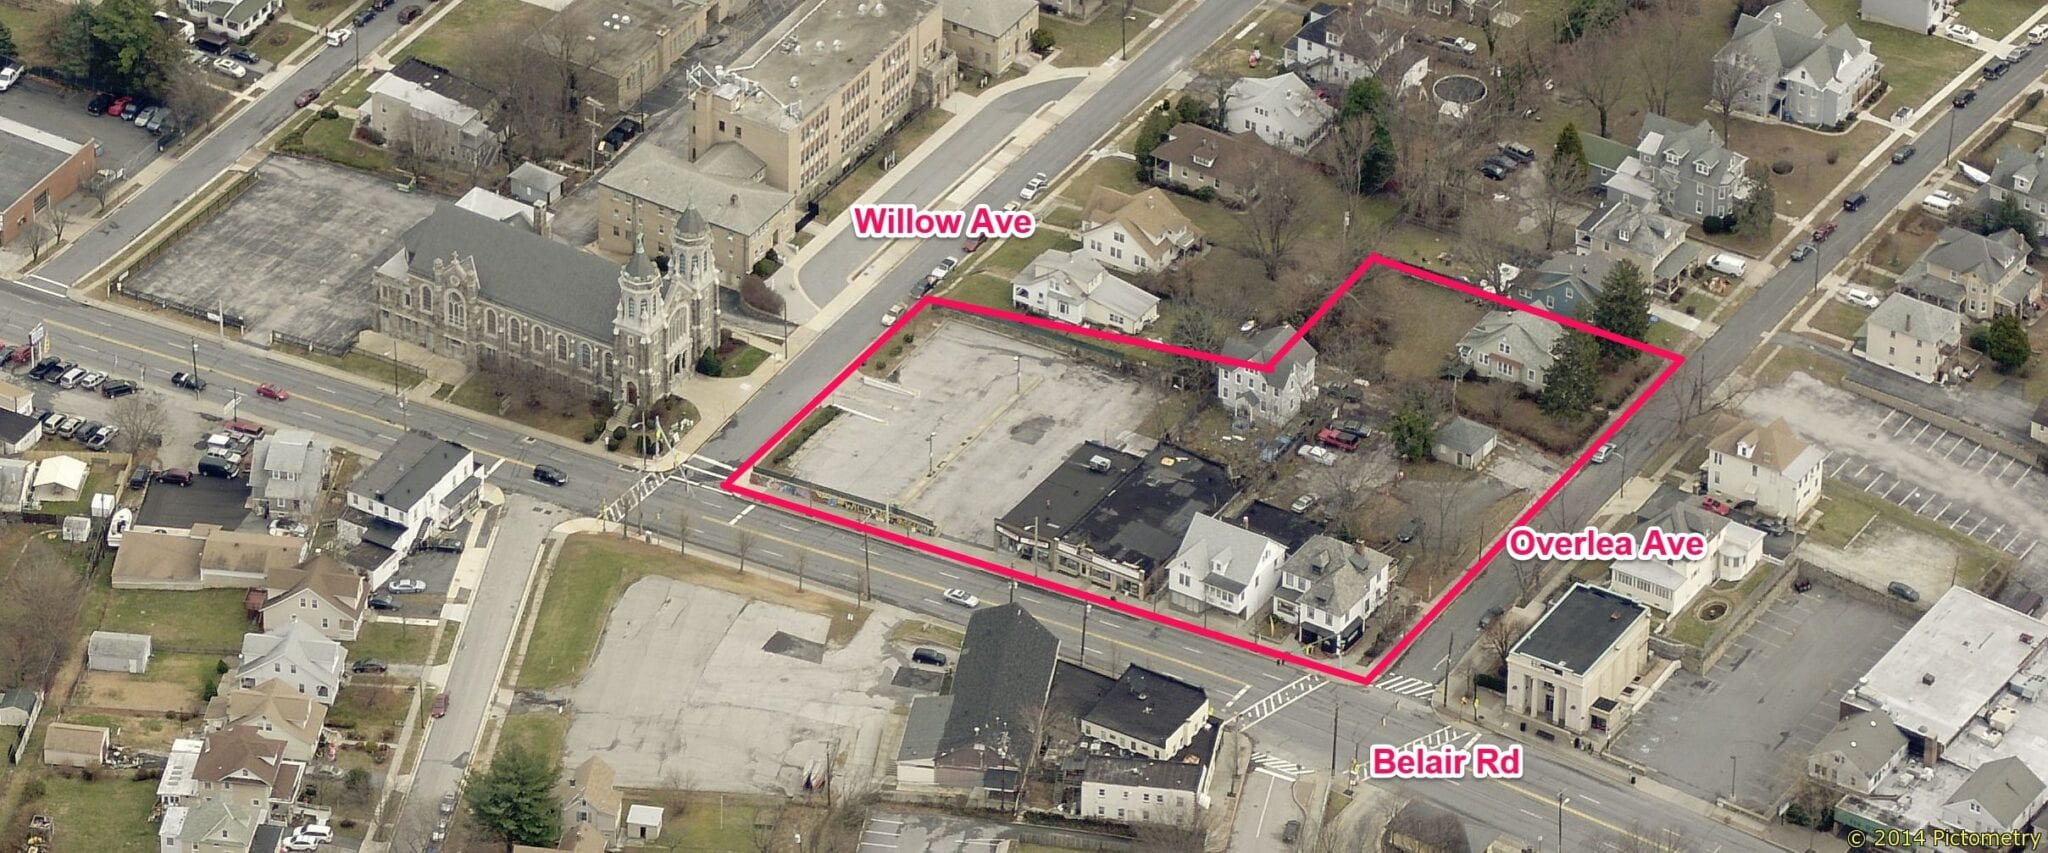 6901-6913 Belair Rd:  Land Lease or Build-to-Suit